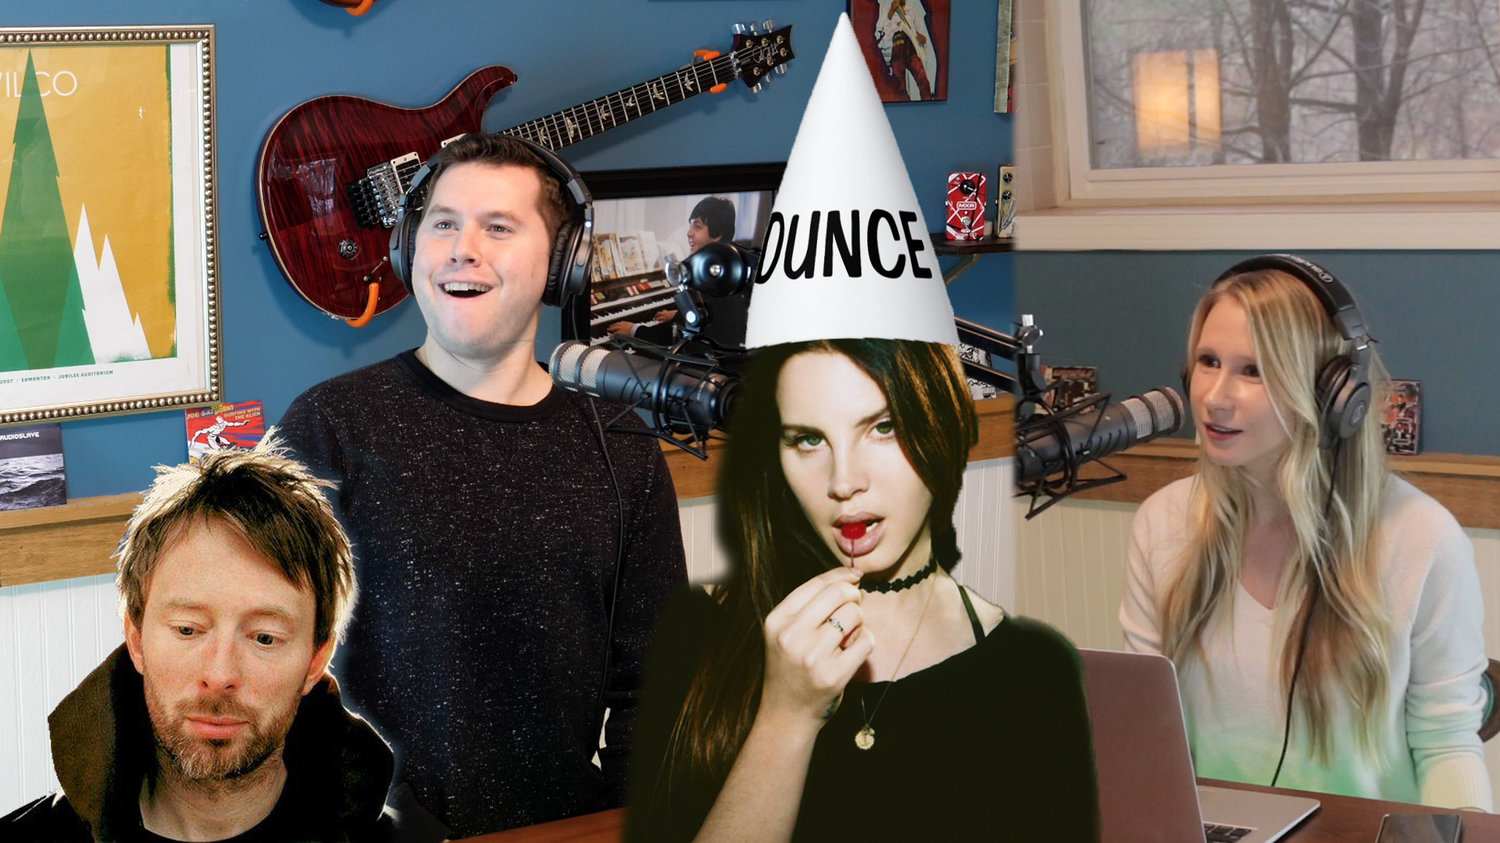 Lana Del Rey Sucks Originality Is Dead The Music Is Win Podcast Ep 19 Music Is Win